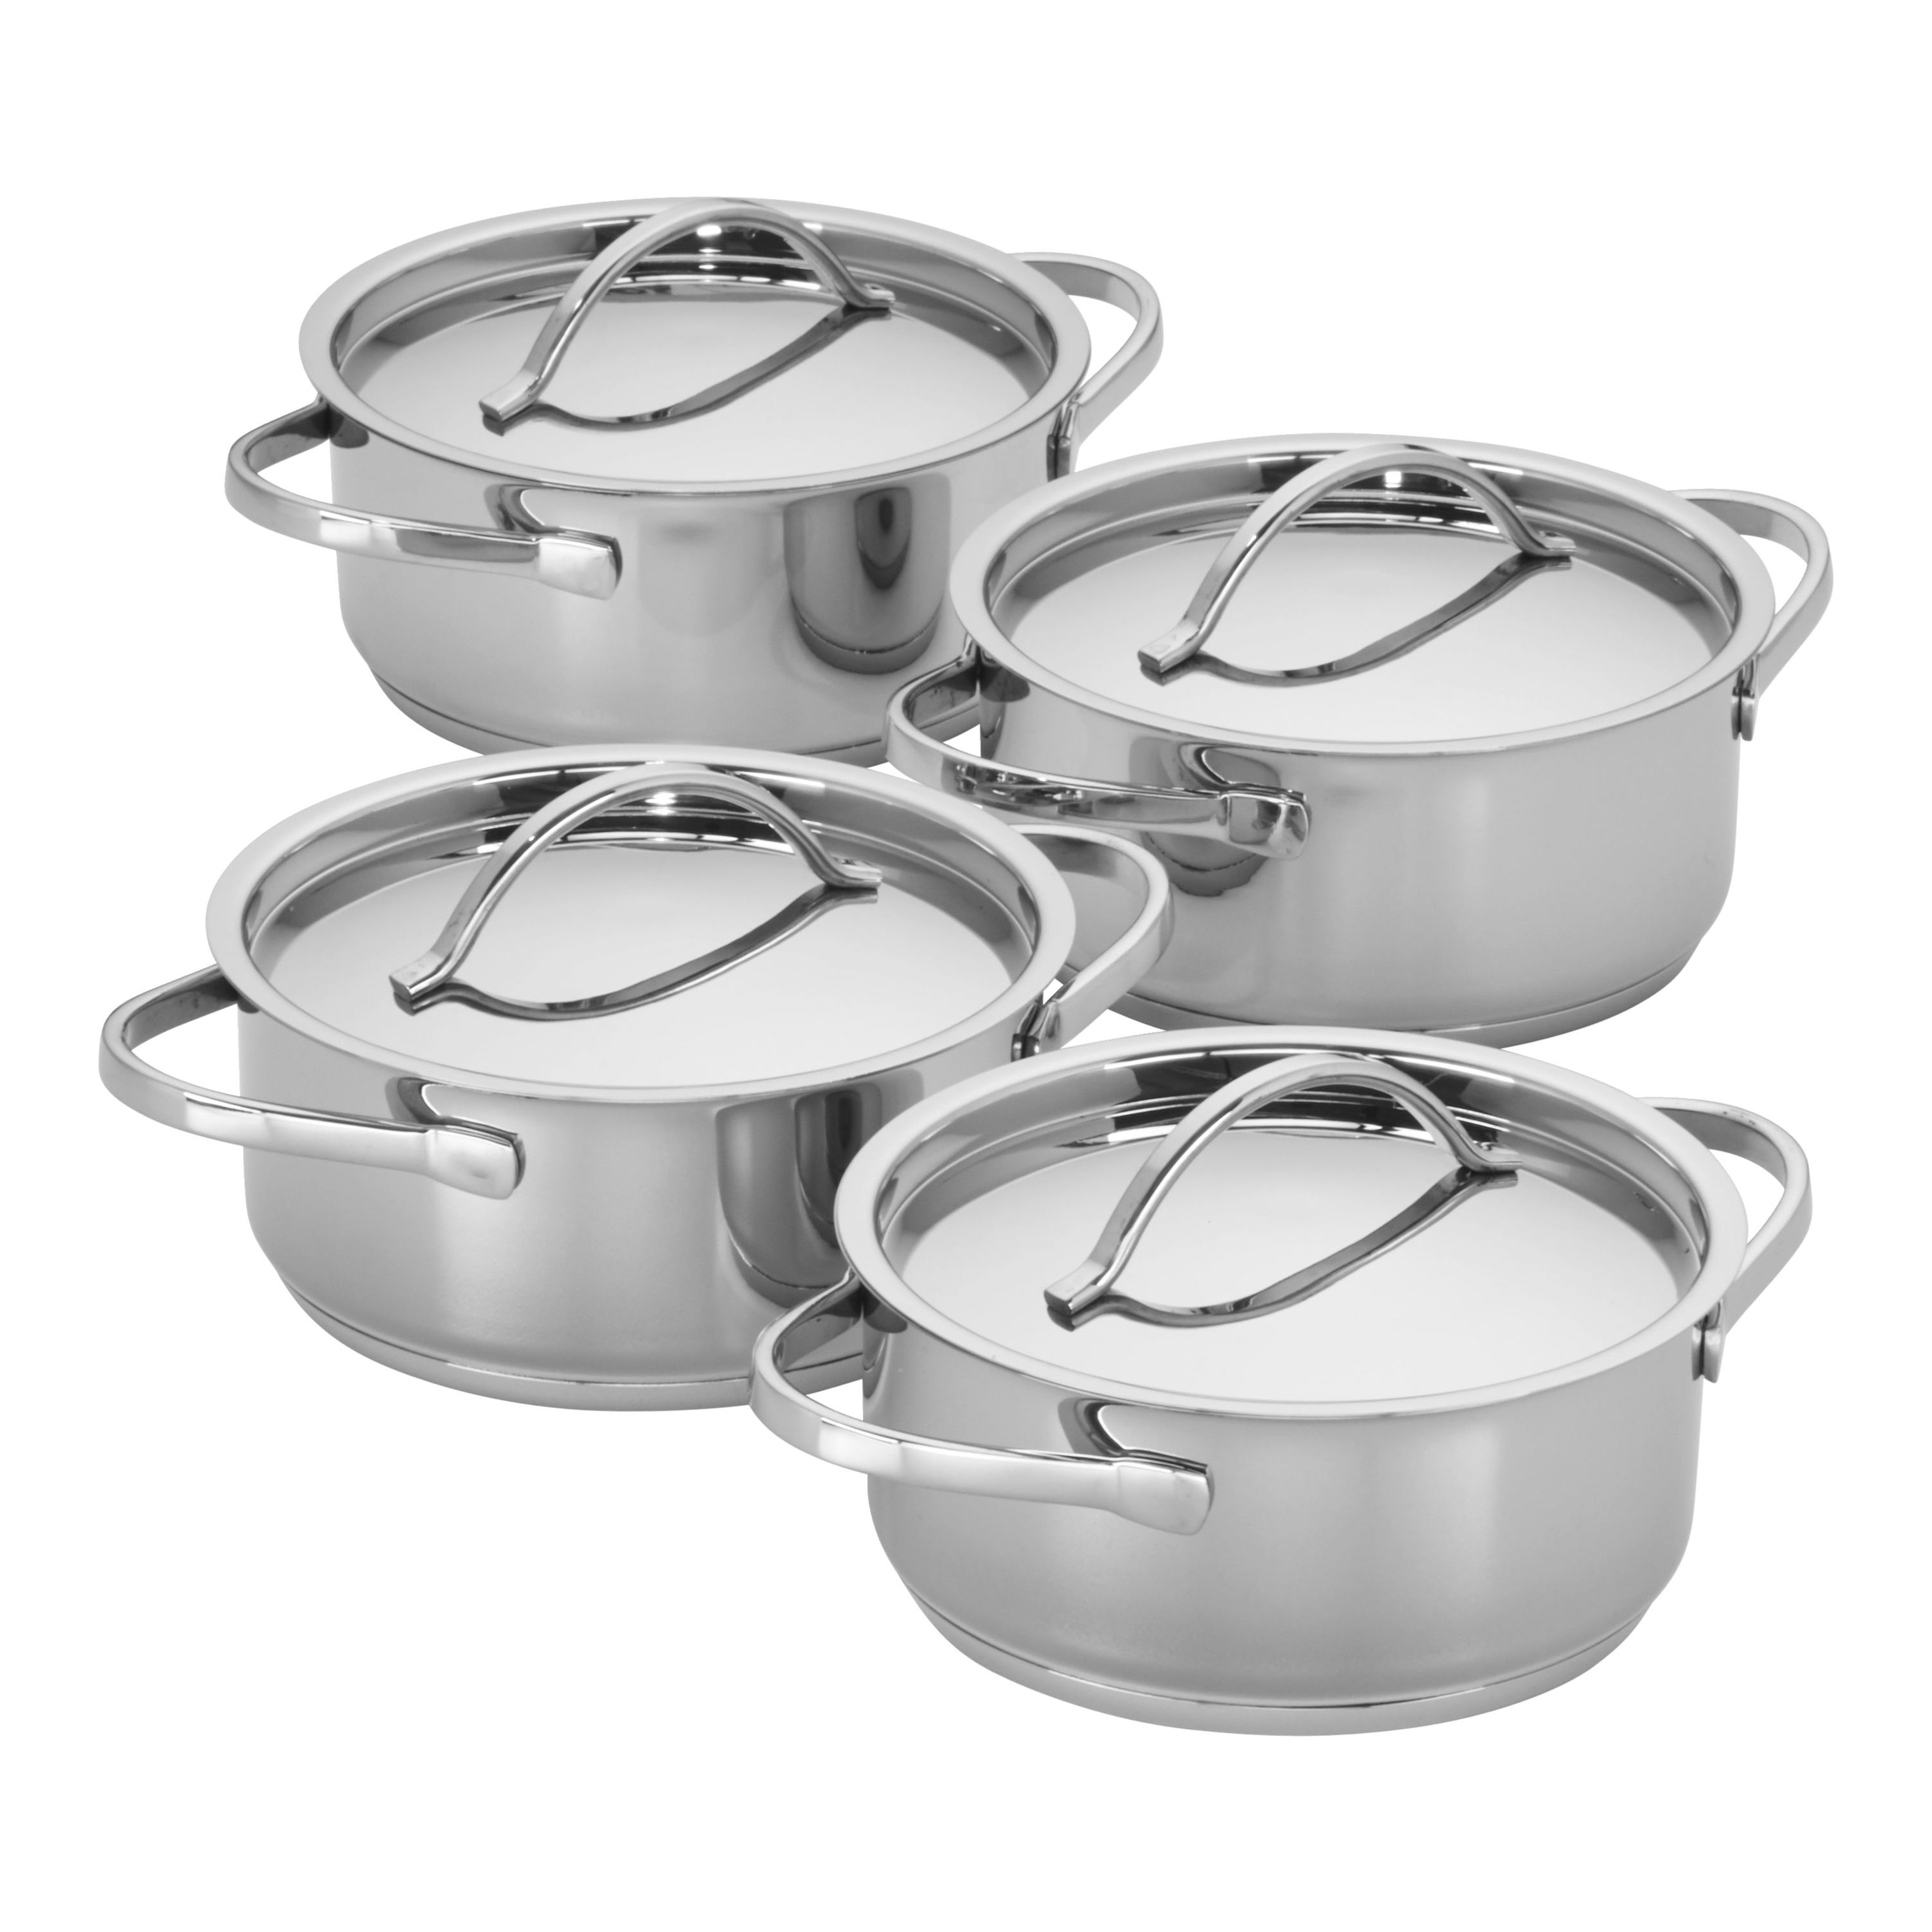 Myer Cutlery Set Demeyere Resto 4 Pc Stainless Steel Mini Dutch Oven Set